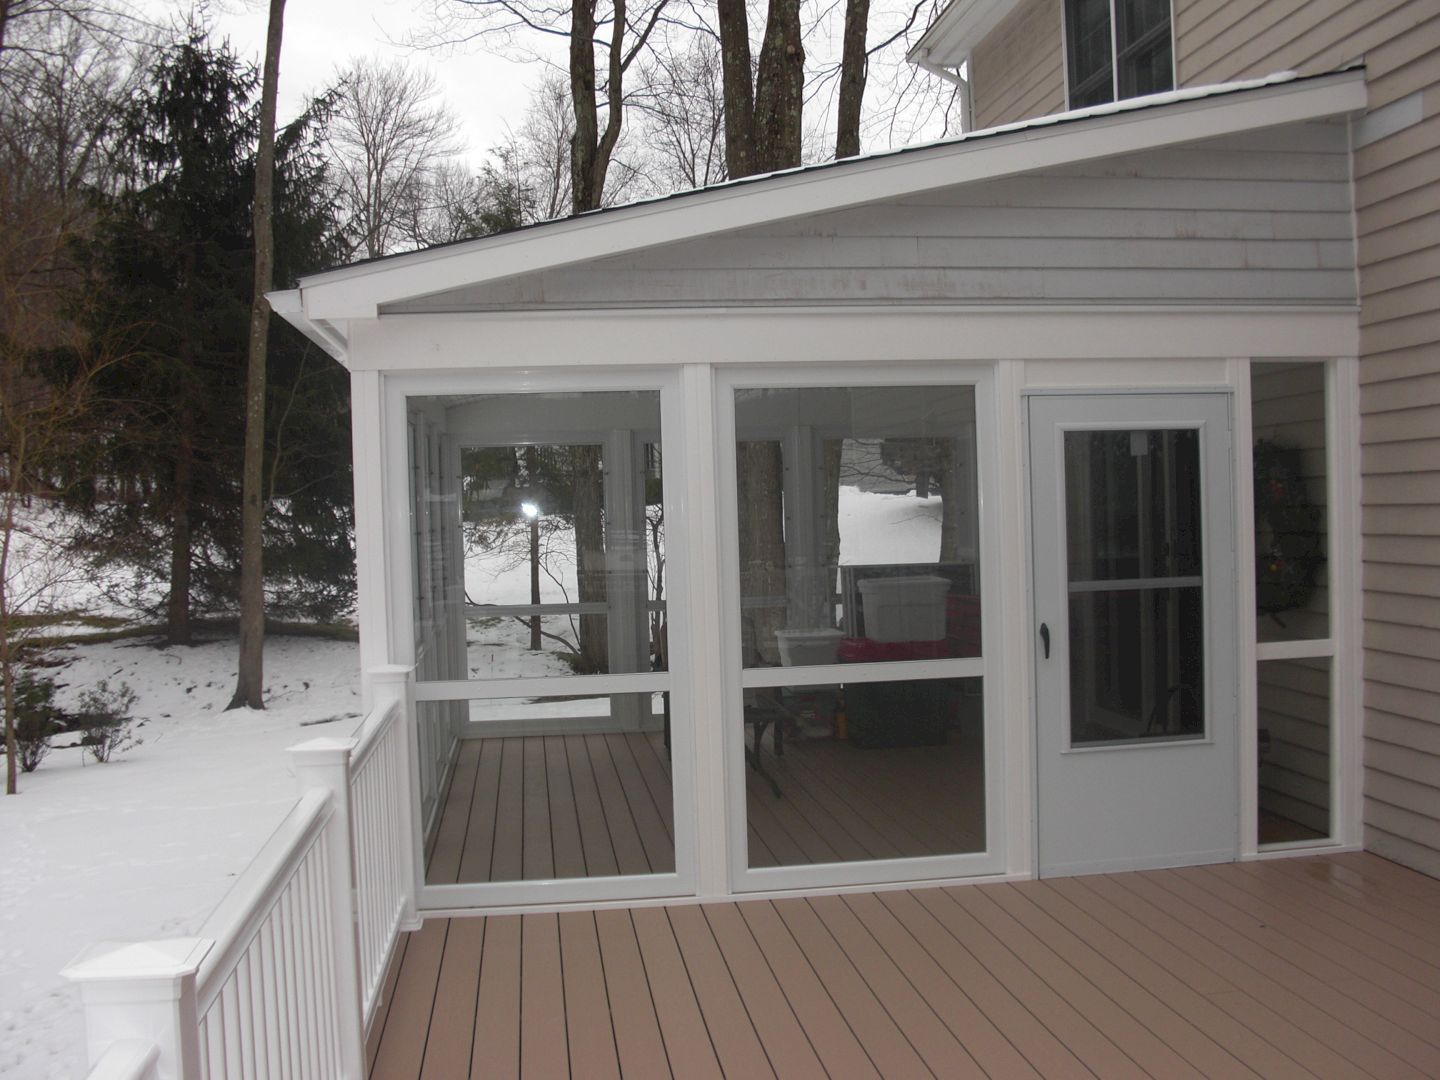 Wonderful Screened In Porch And Deck 119 Best Design Ideas Porch Design Decks And Porches Building A Porch